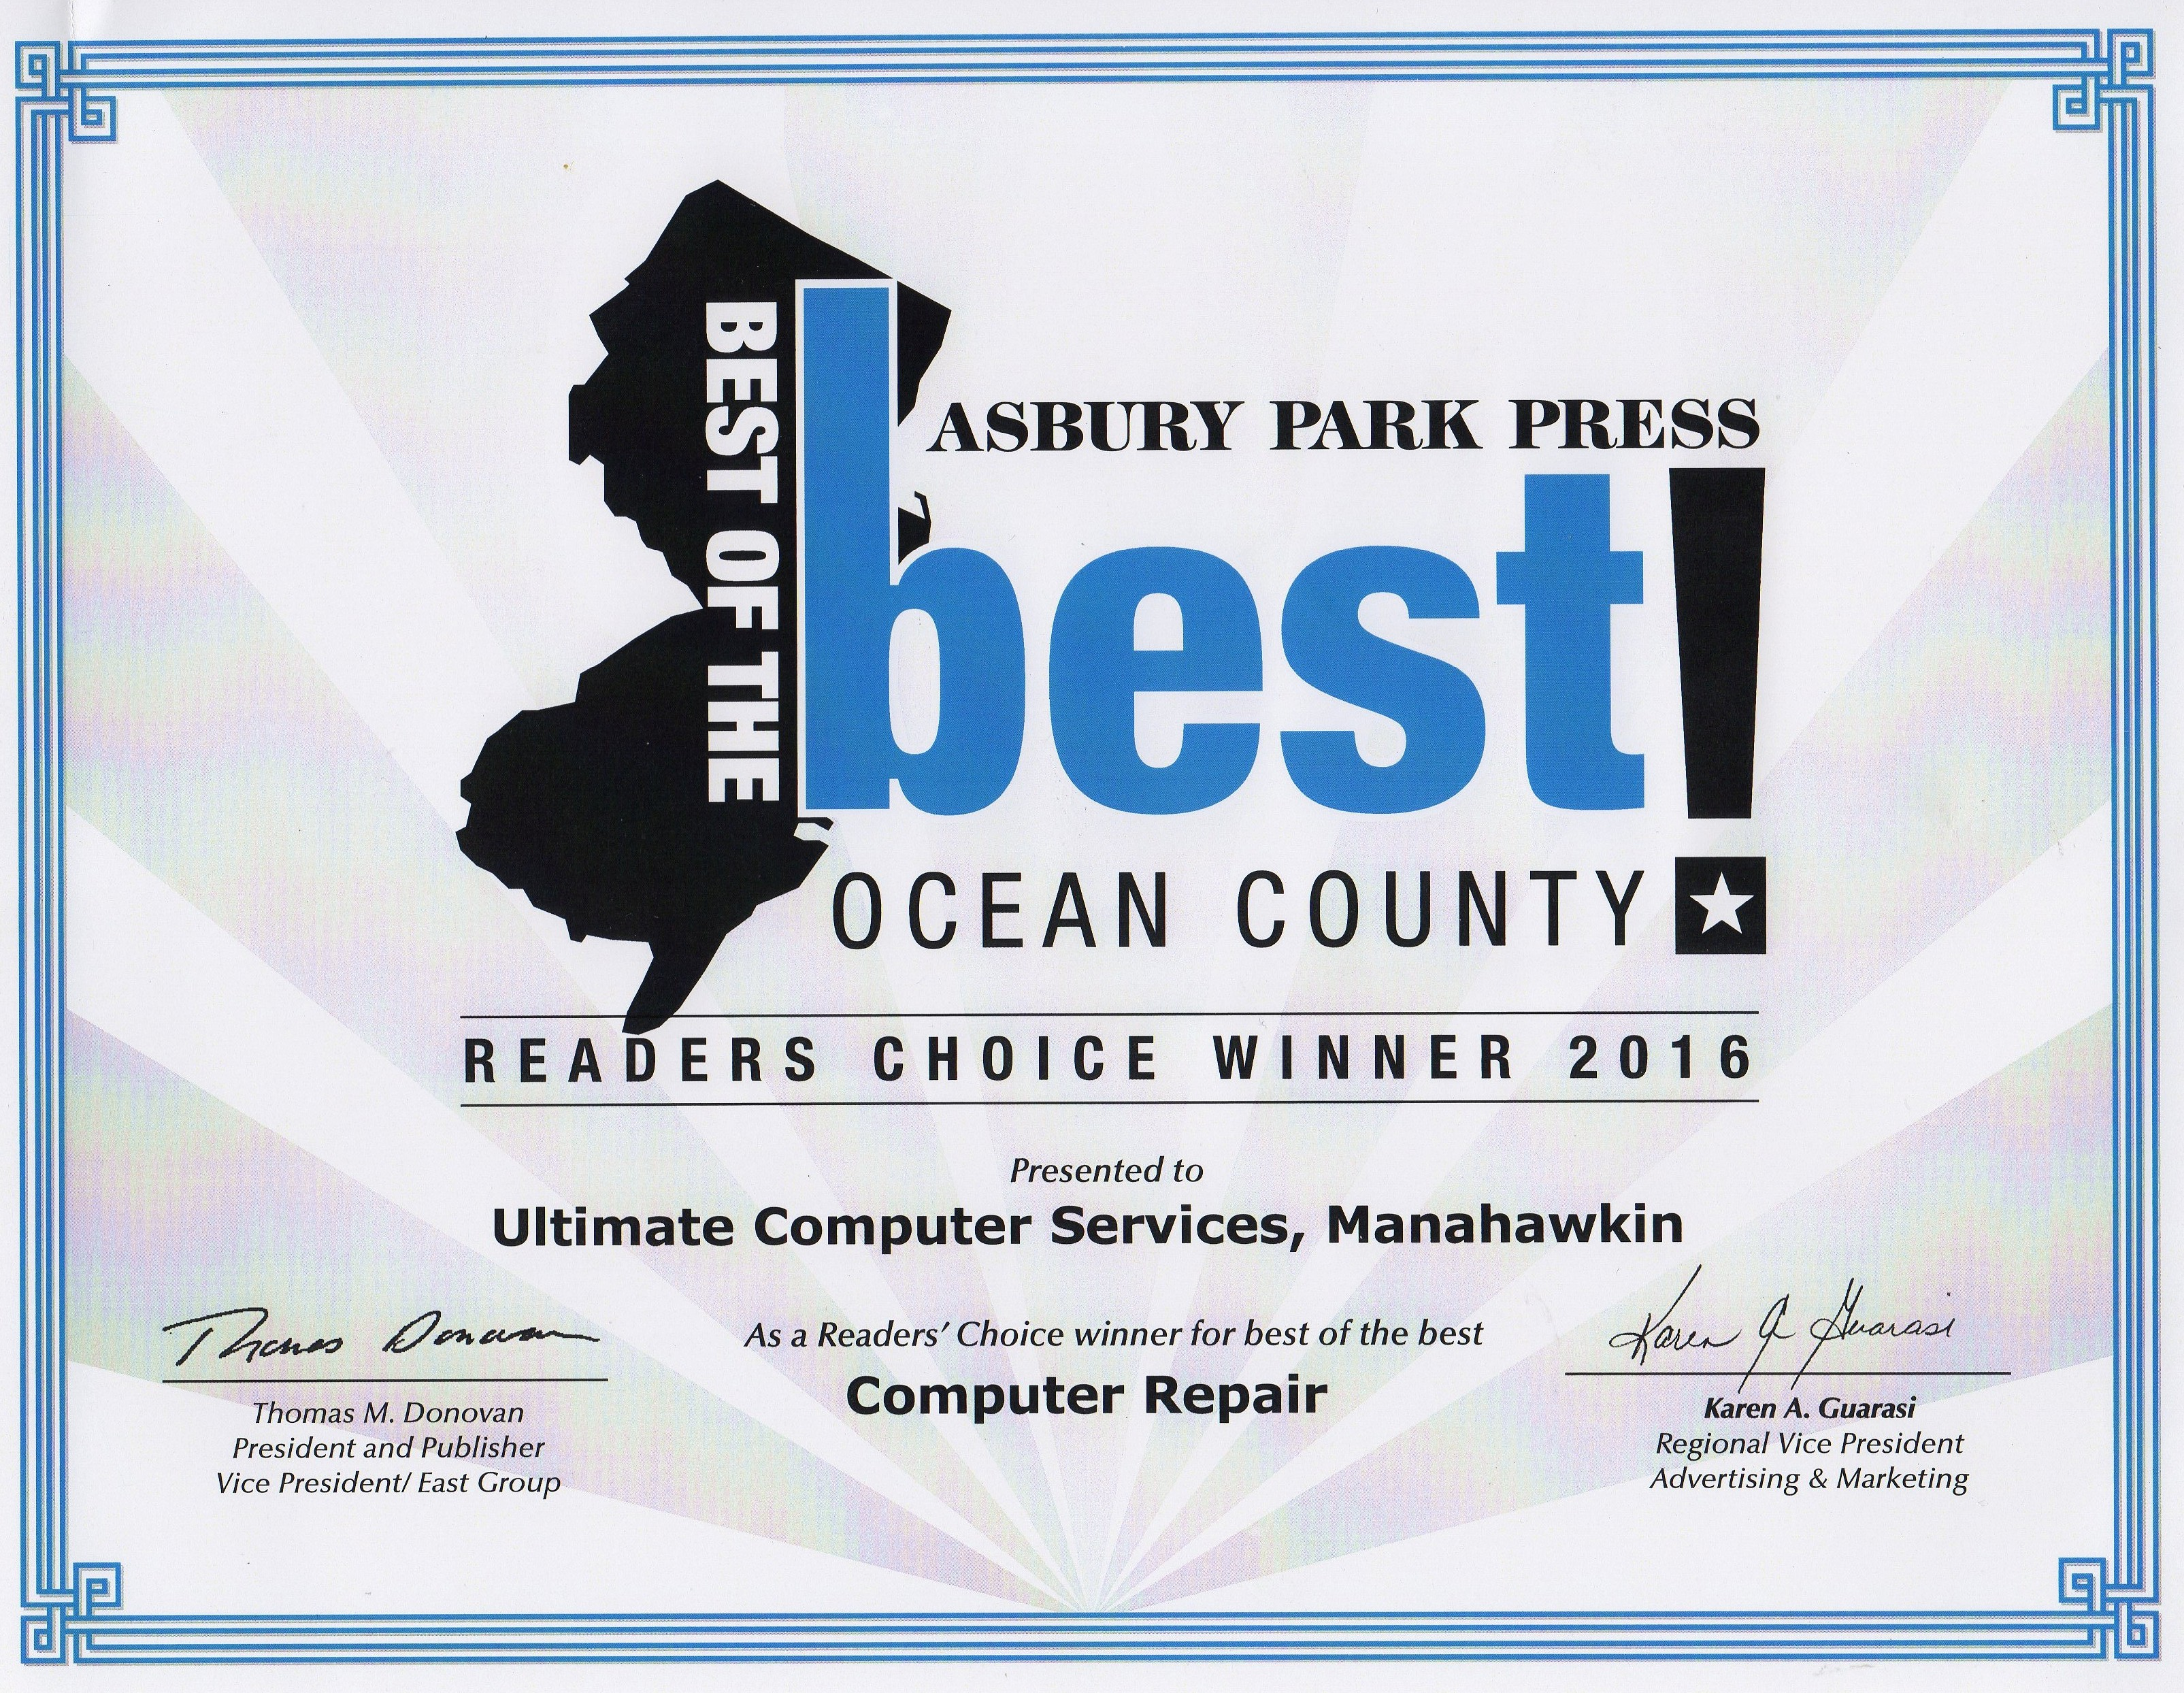 Ultimate Computer Services Ocean County Computer Repair